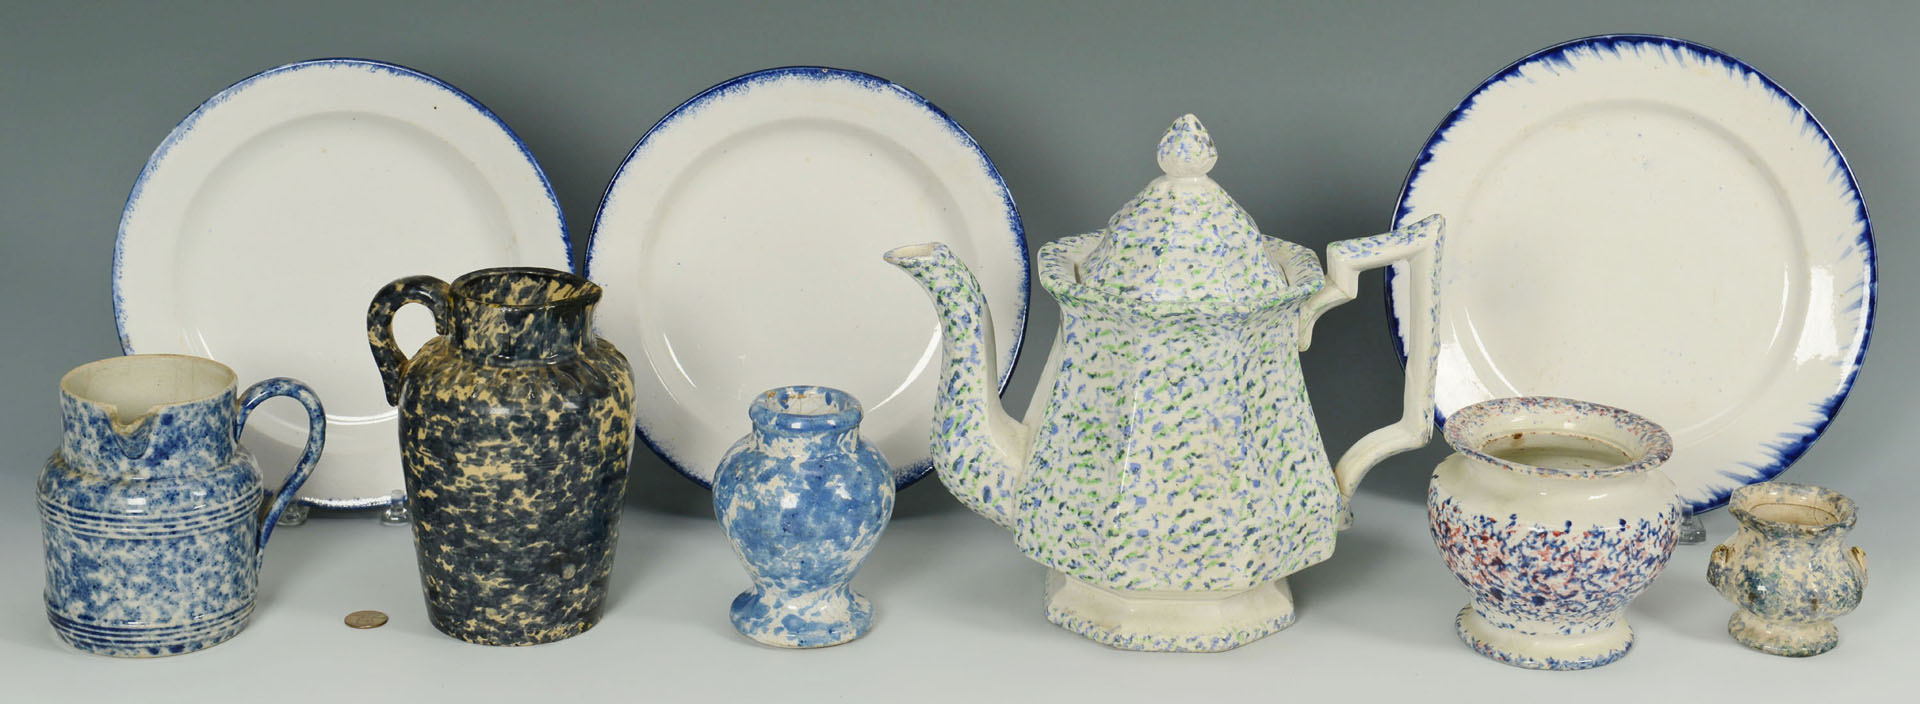 Lot 633: 9 Spatterware and spongware related items